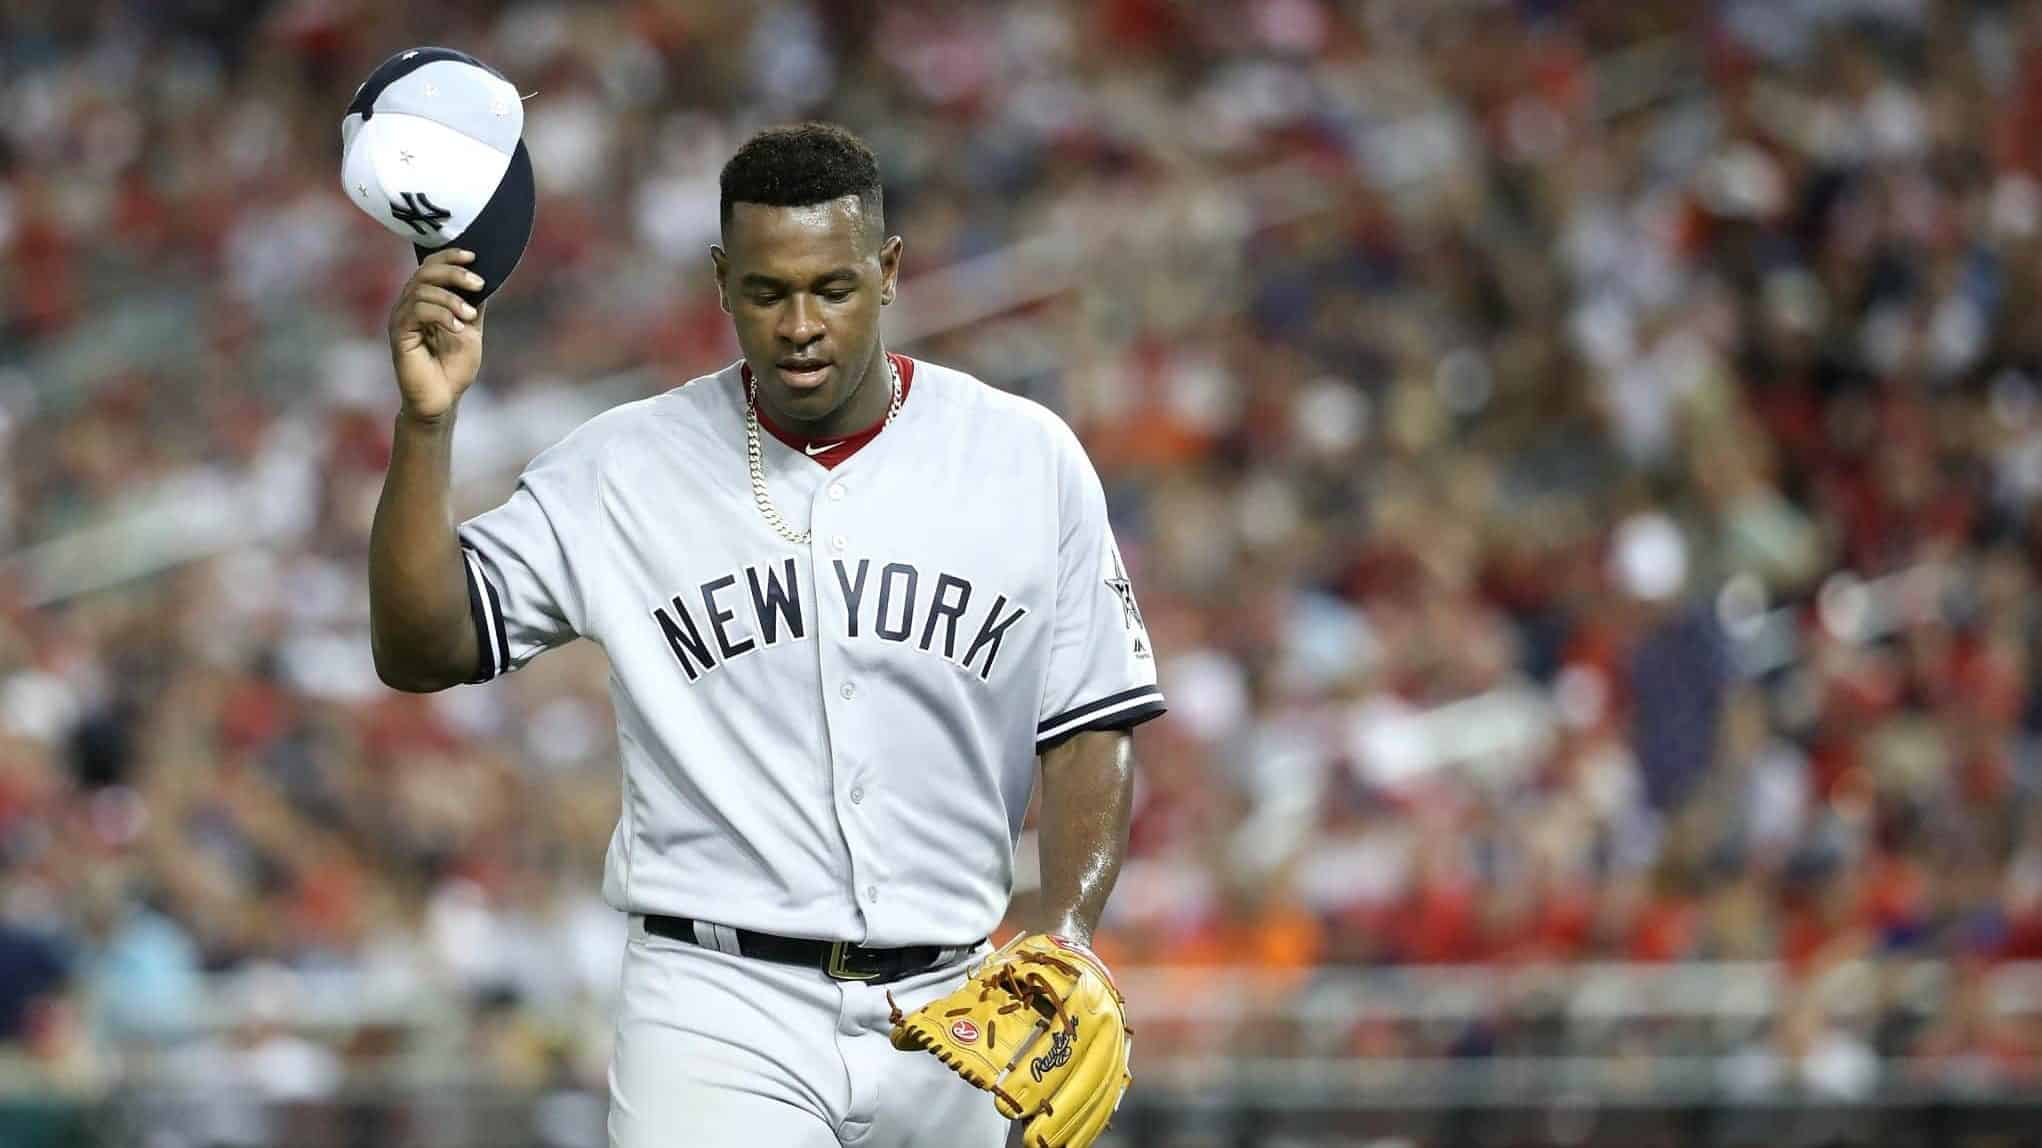 89th-mlb-all-star-game-presented-by-mastercard-2-e1532149596829